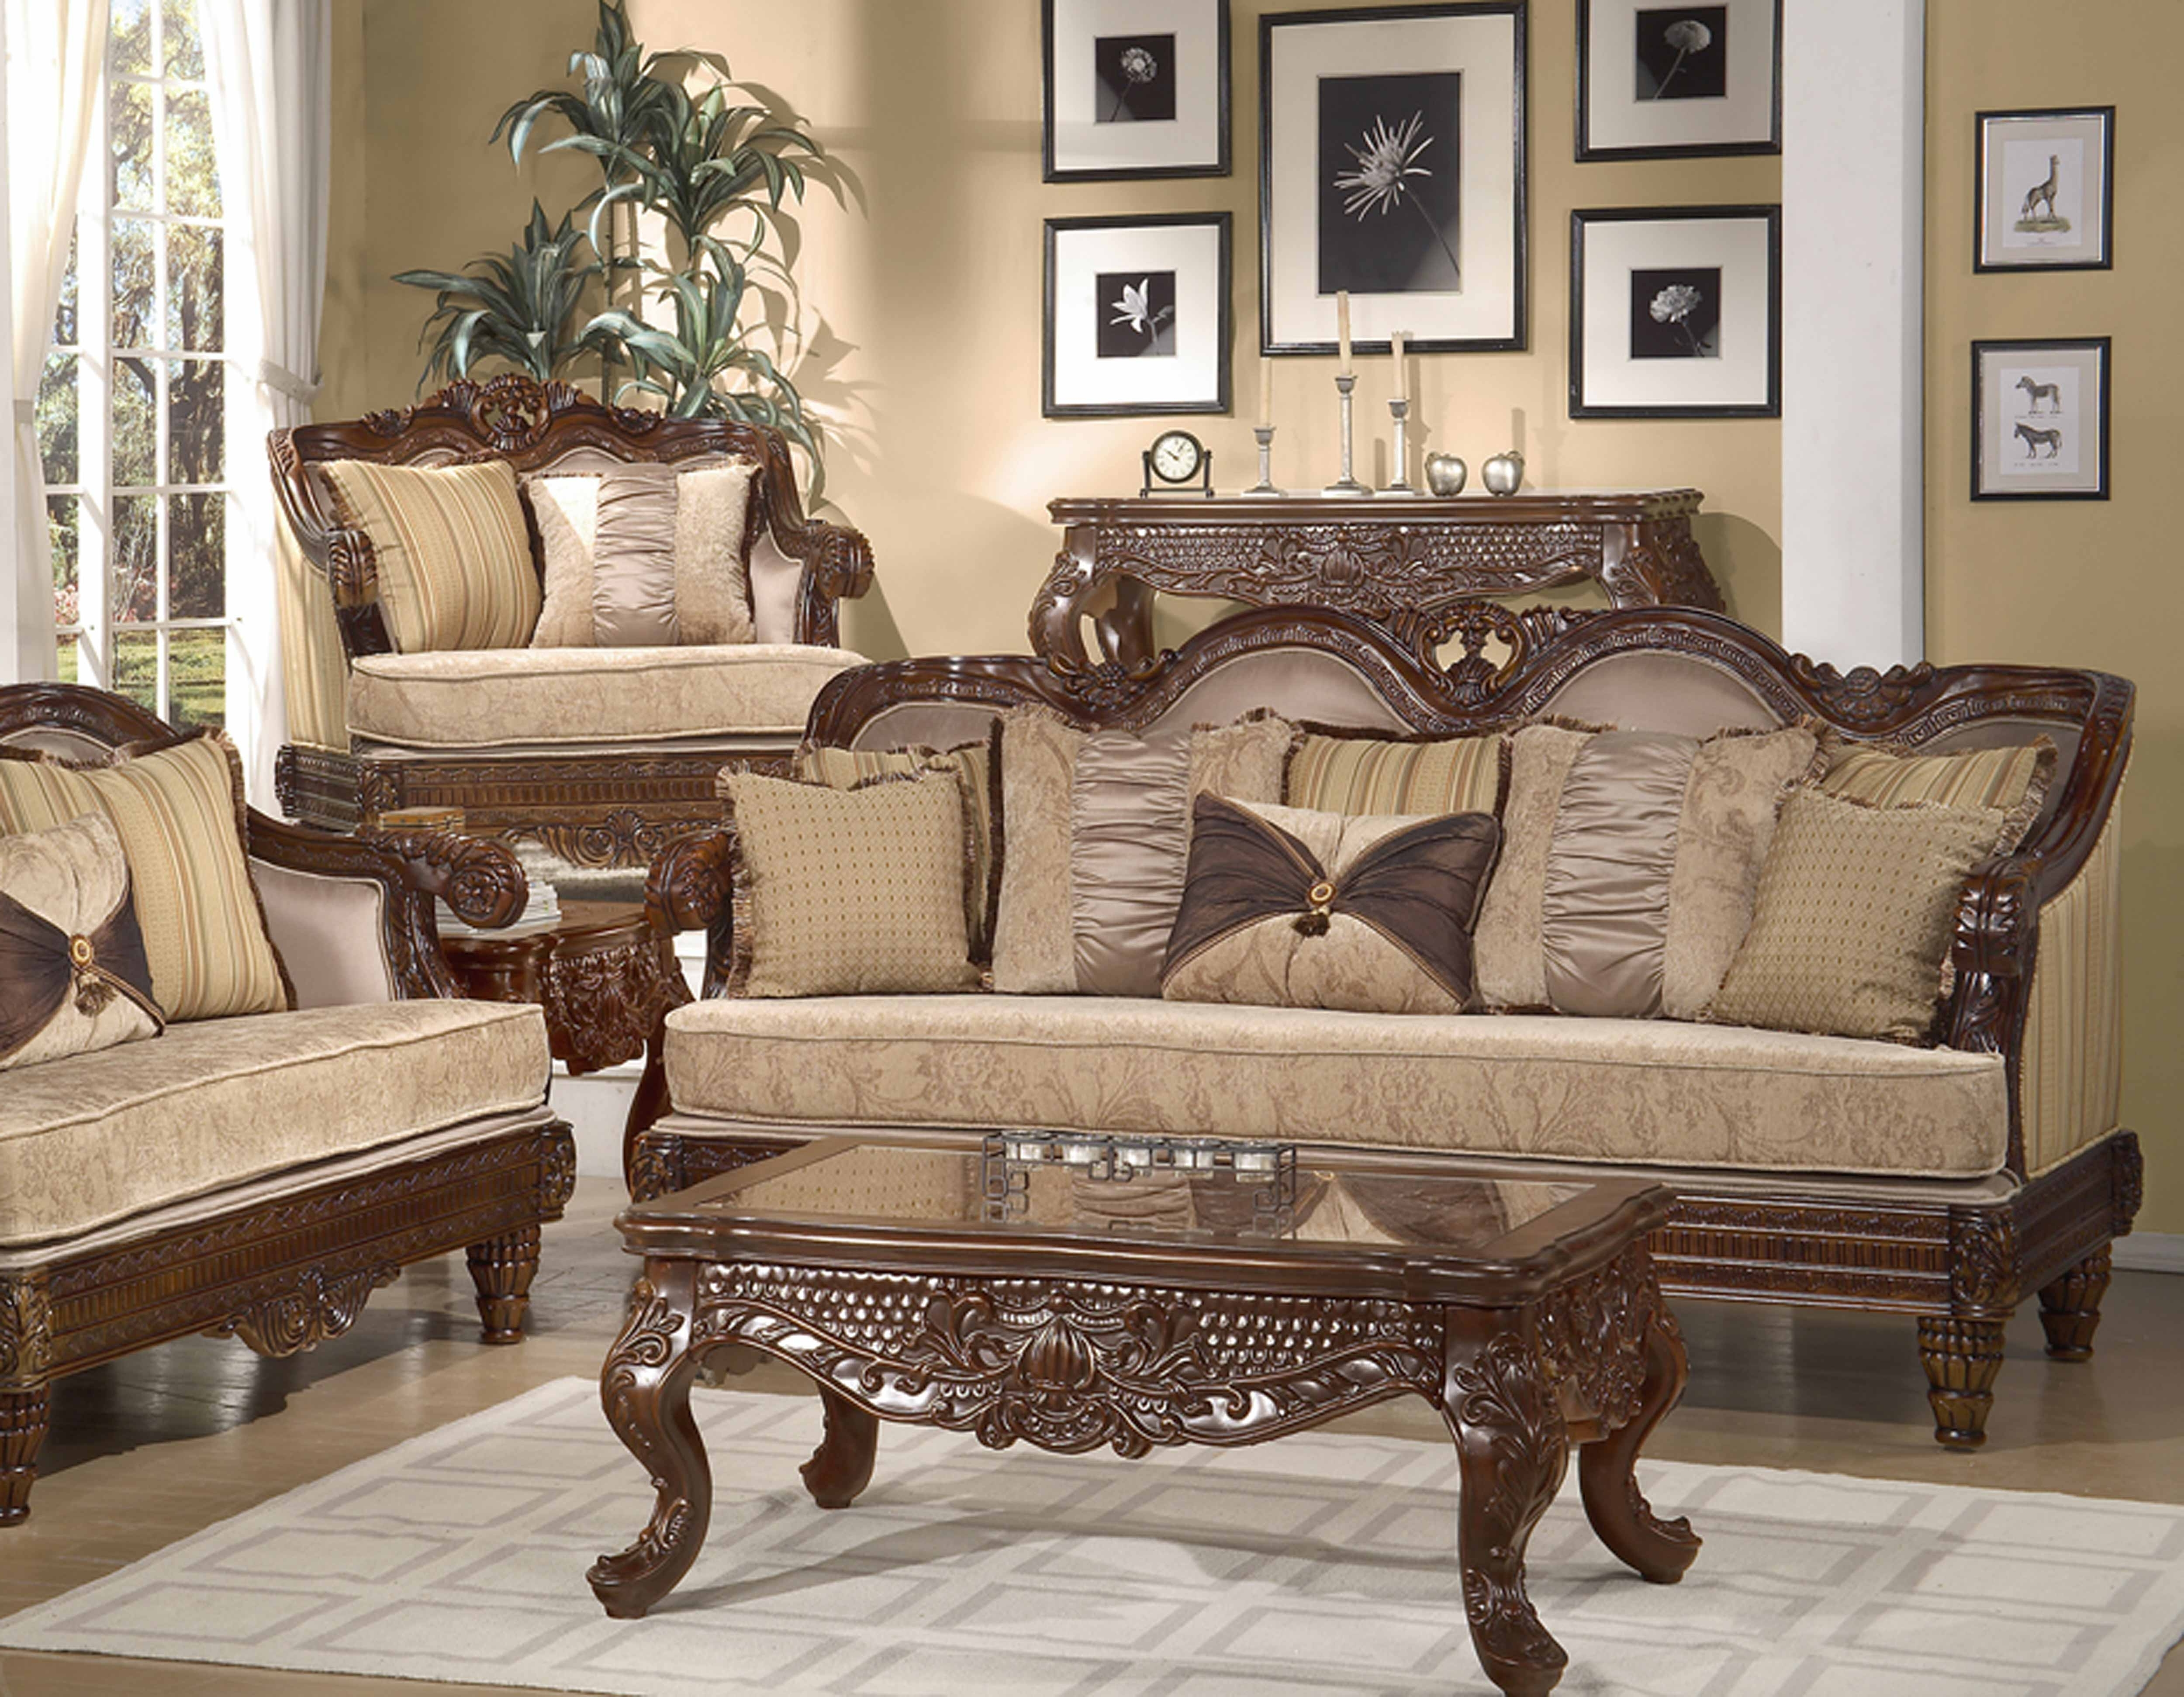 Uncategorized : Elegant Sofas With Stunning Formal Traditional Pertaining To Fashionable Traditional Sofas (View 11 of 20)